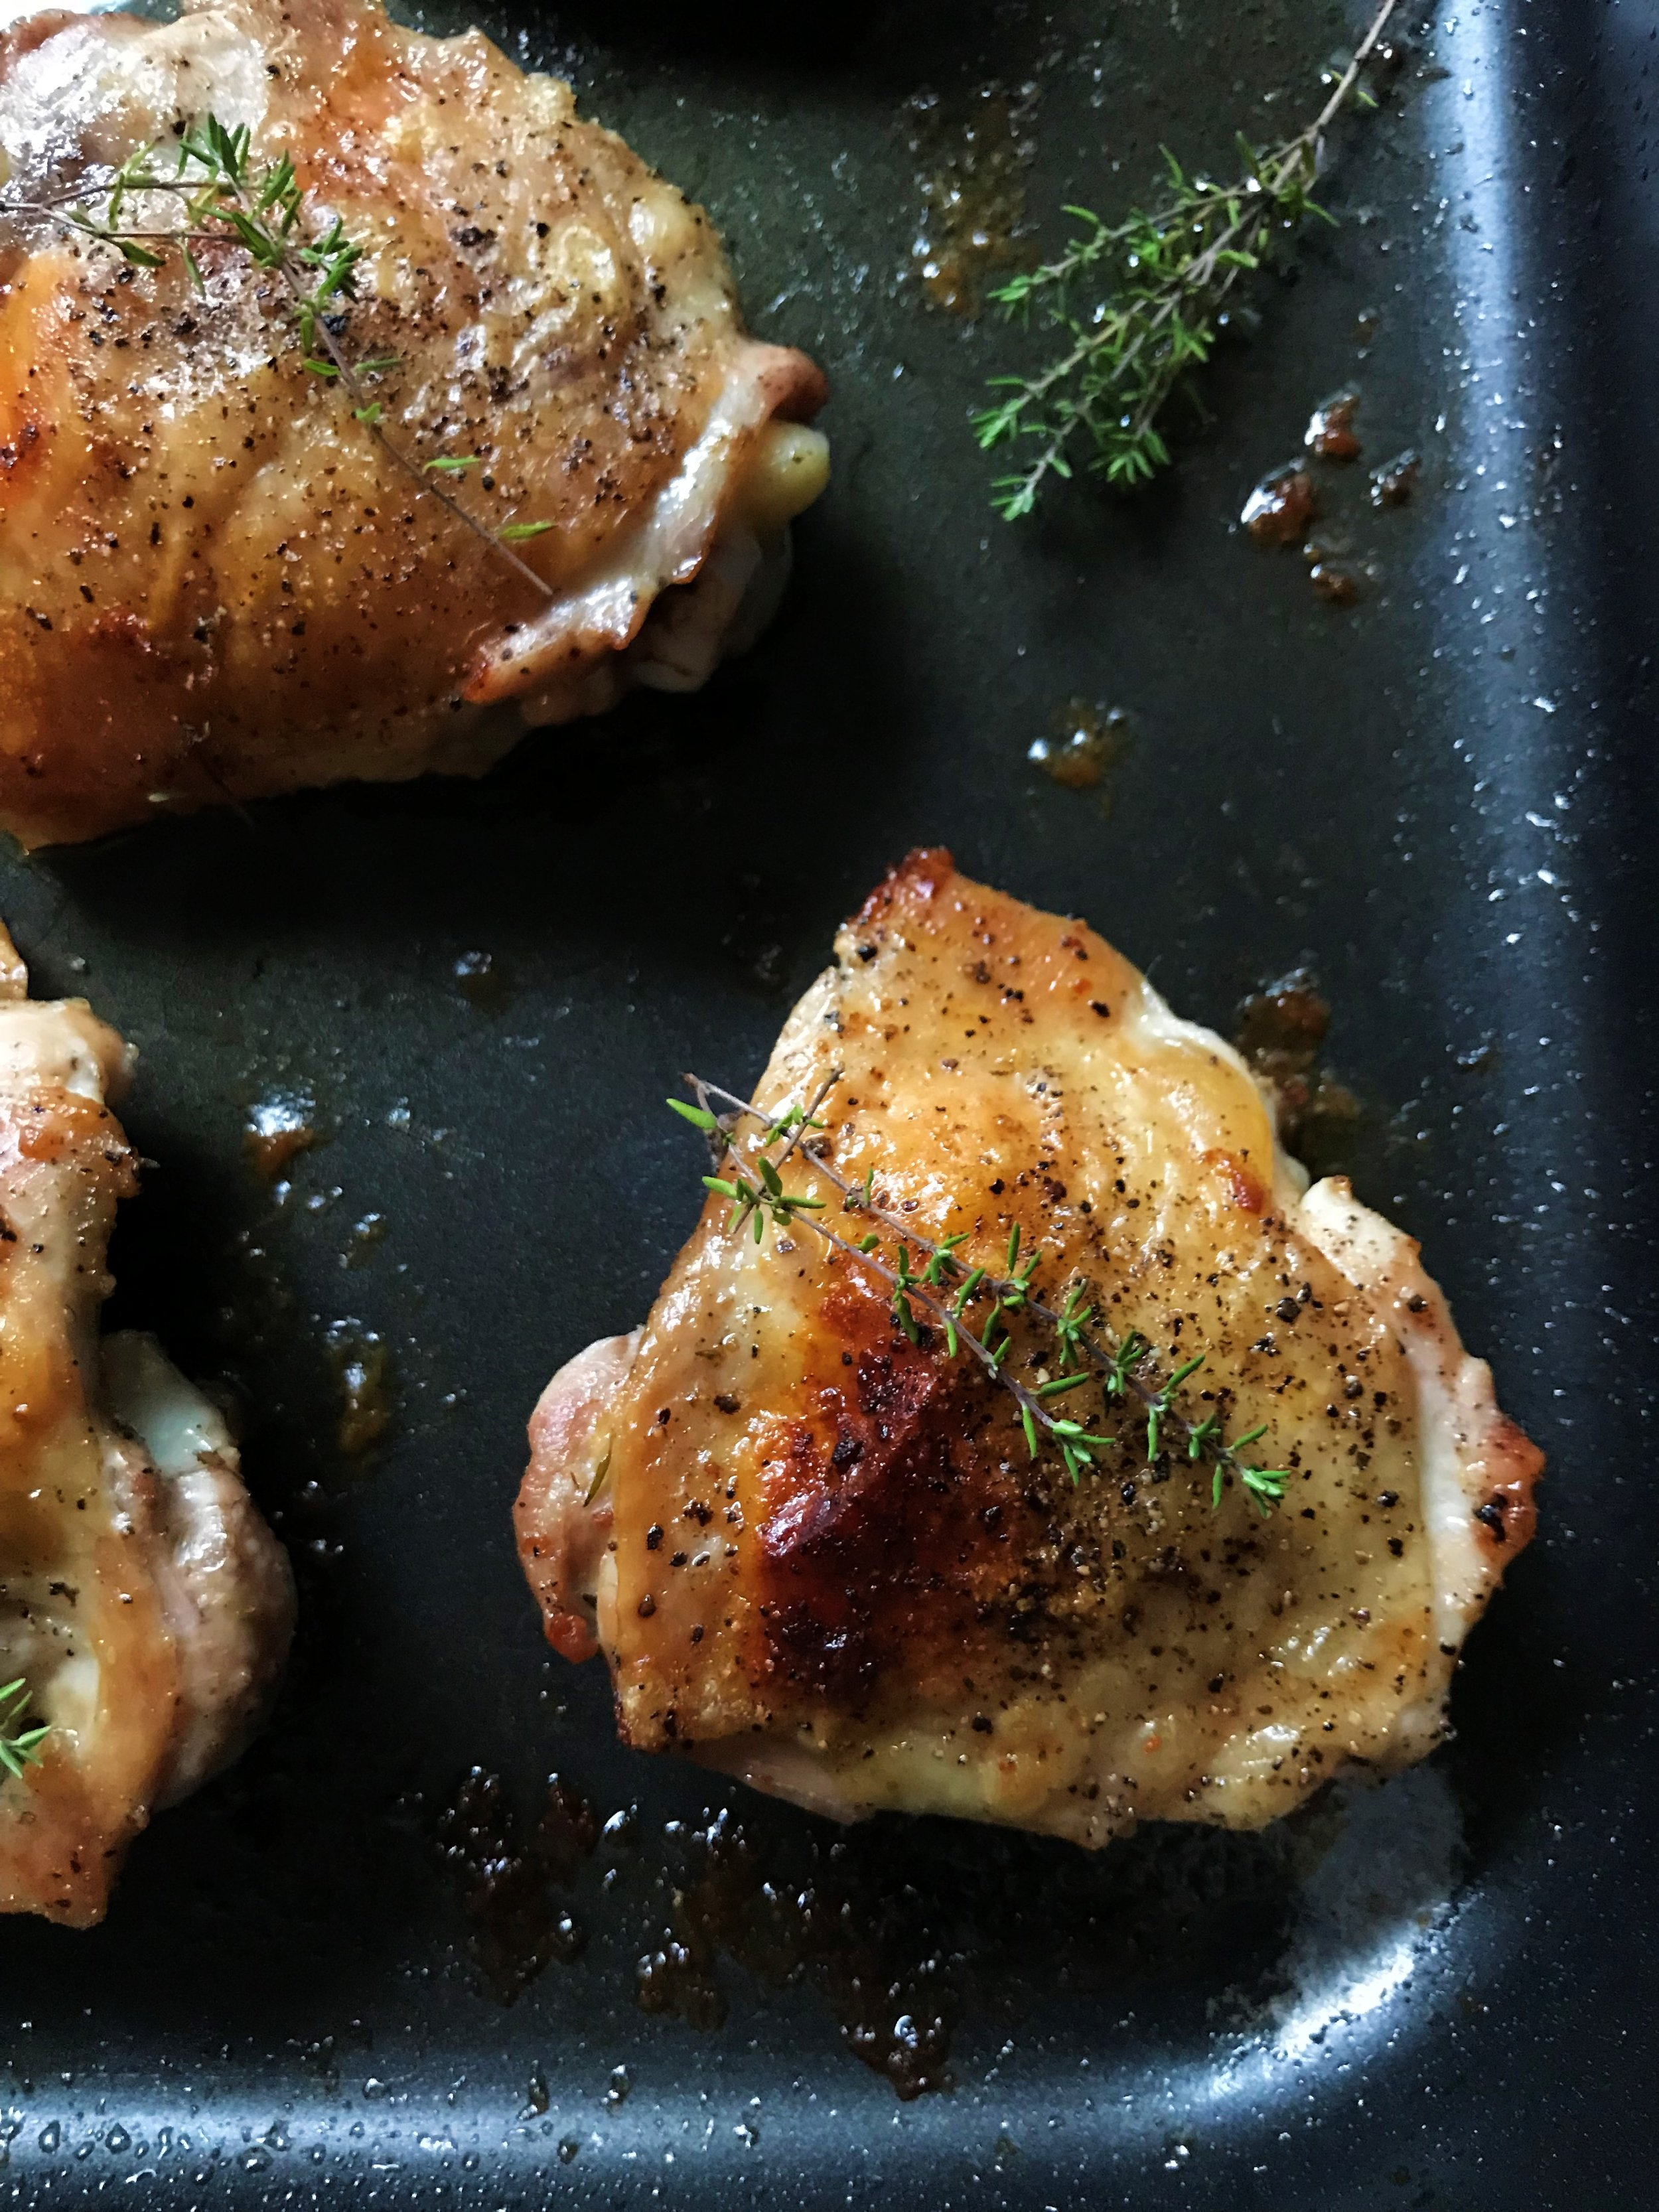 These babies are so tasty! Simple Baked Chicken Thighs made in the Adventure Kitchen (and about to be devoured by me).